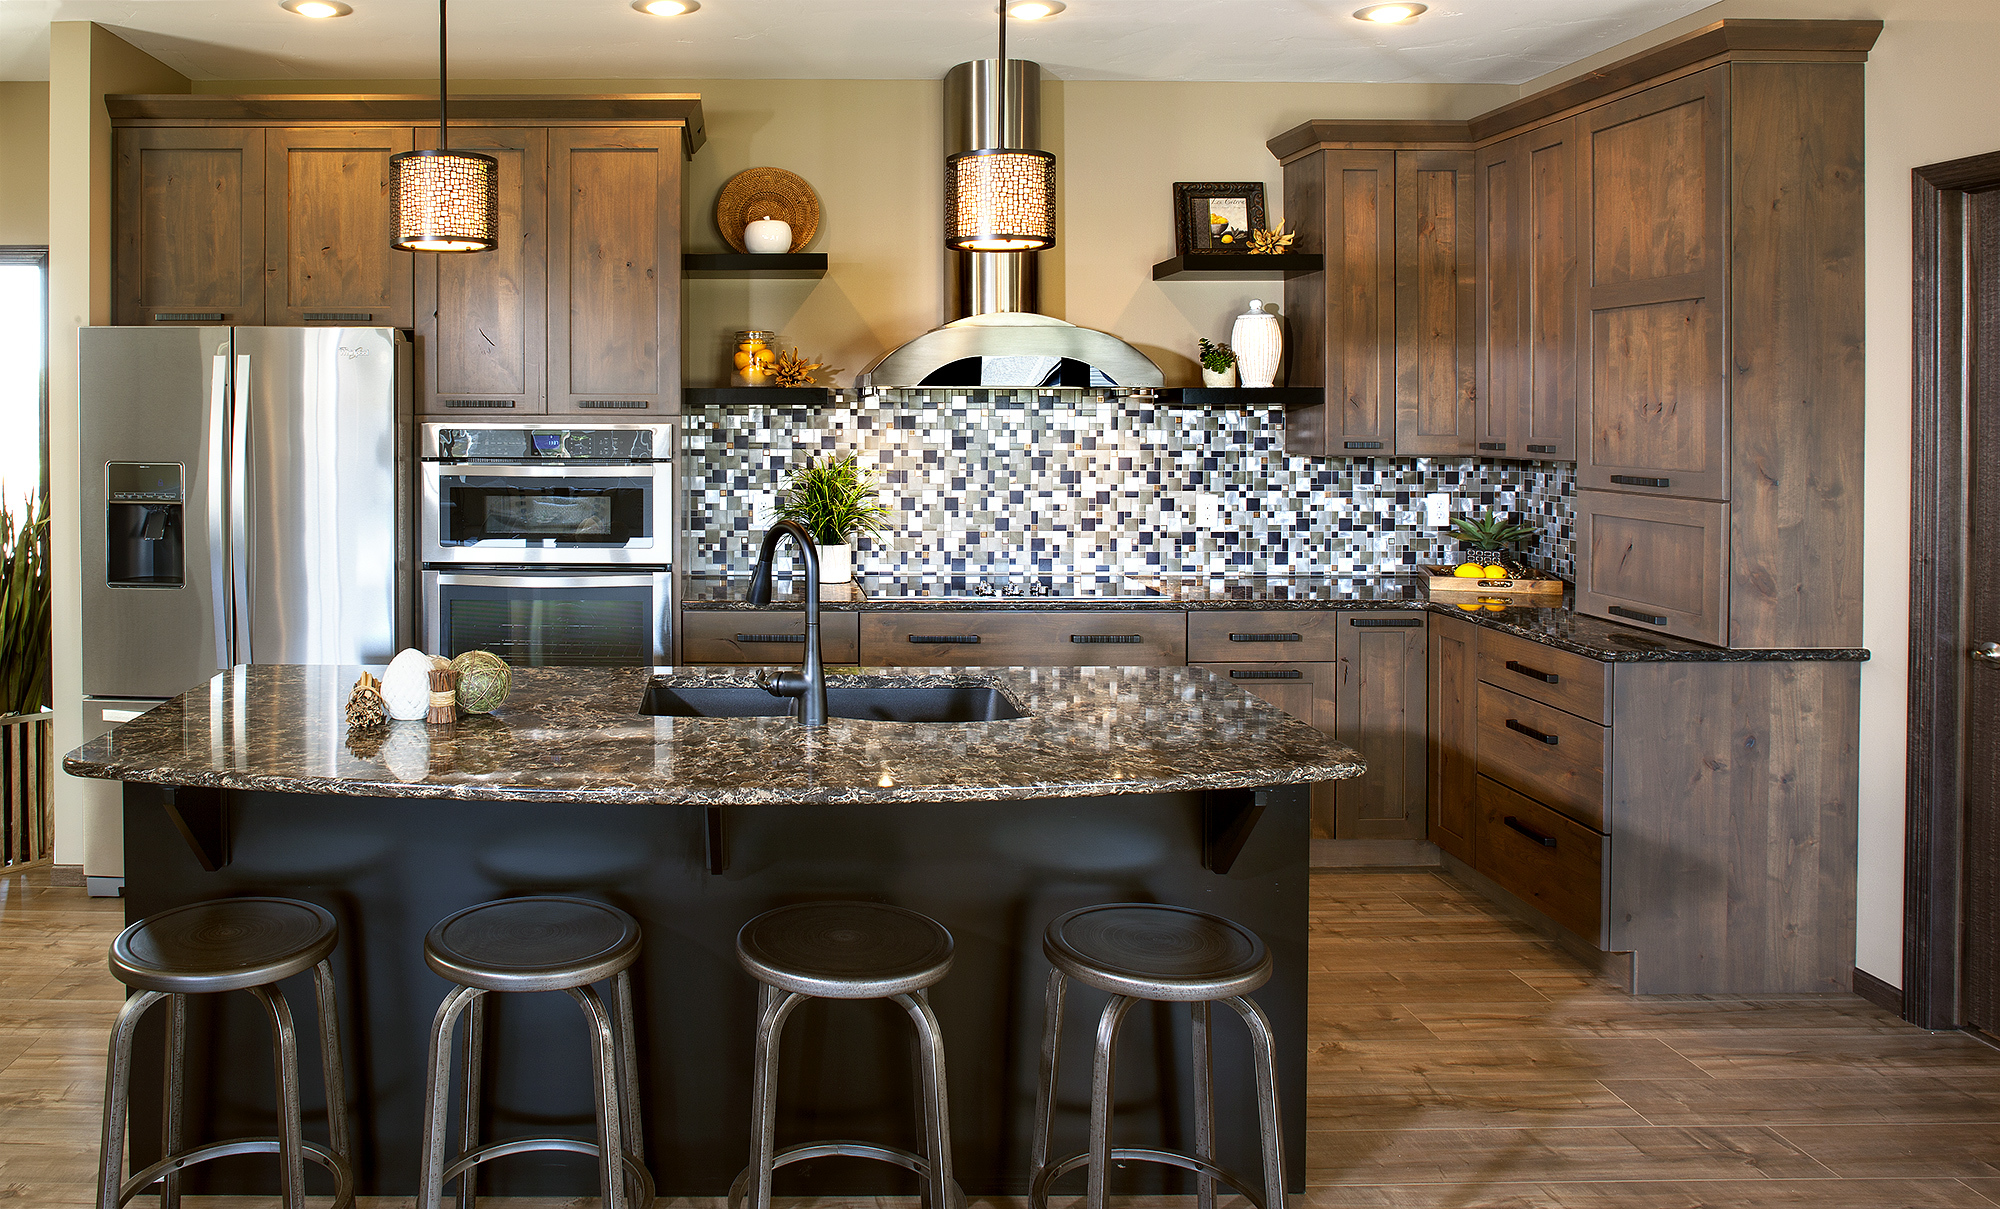 Stained Kitchen Cabinets in Driftwood and Island in Black by ShowplaceEVO - view 1